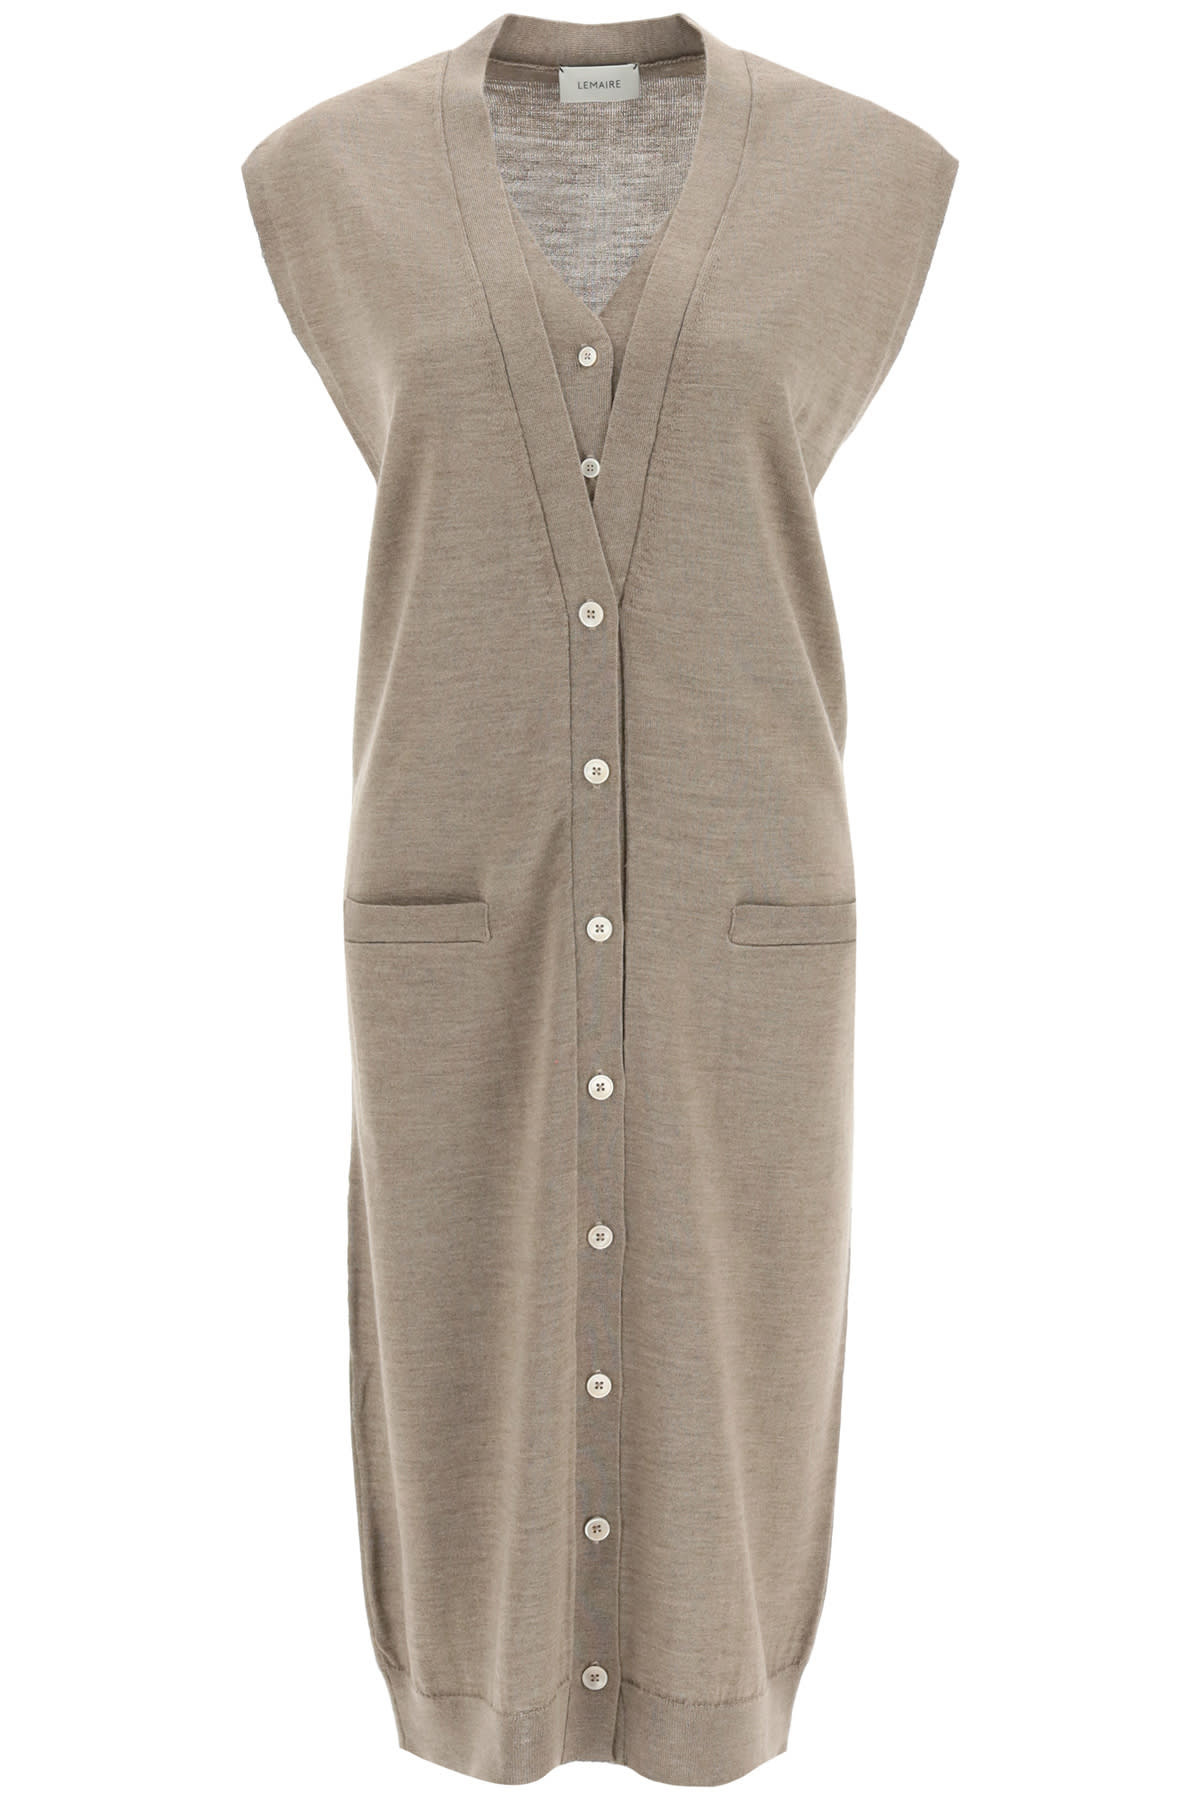 Lemaire LAYERED DRESS IN MERINO WOOL BLEND